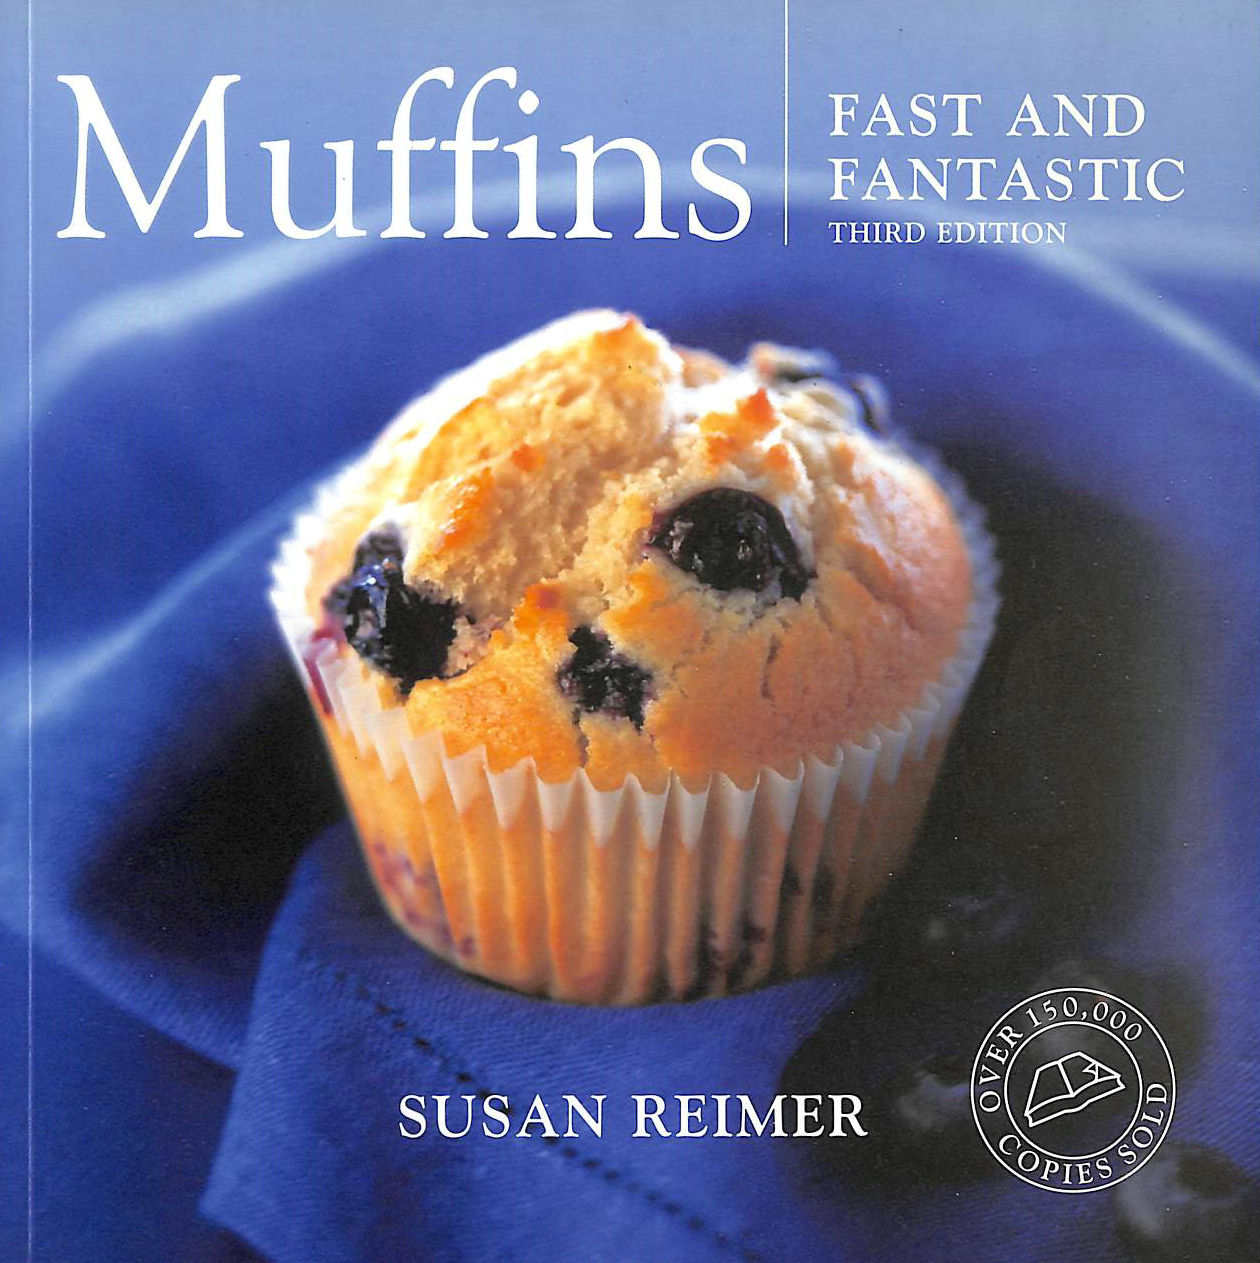 Image for Muffins Fast and Fantastic